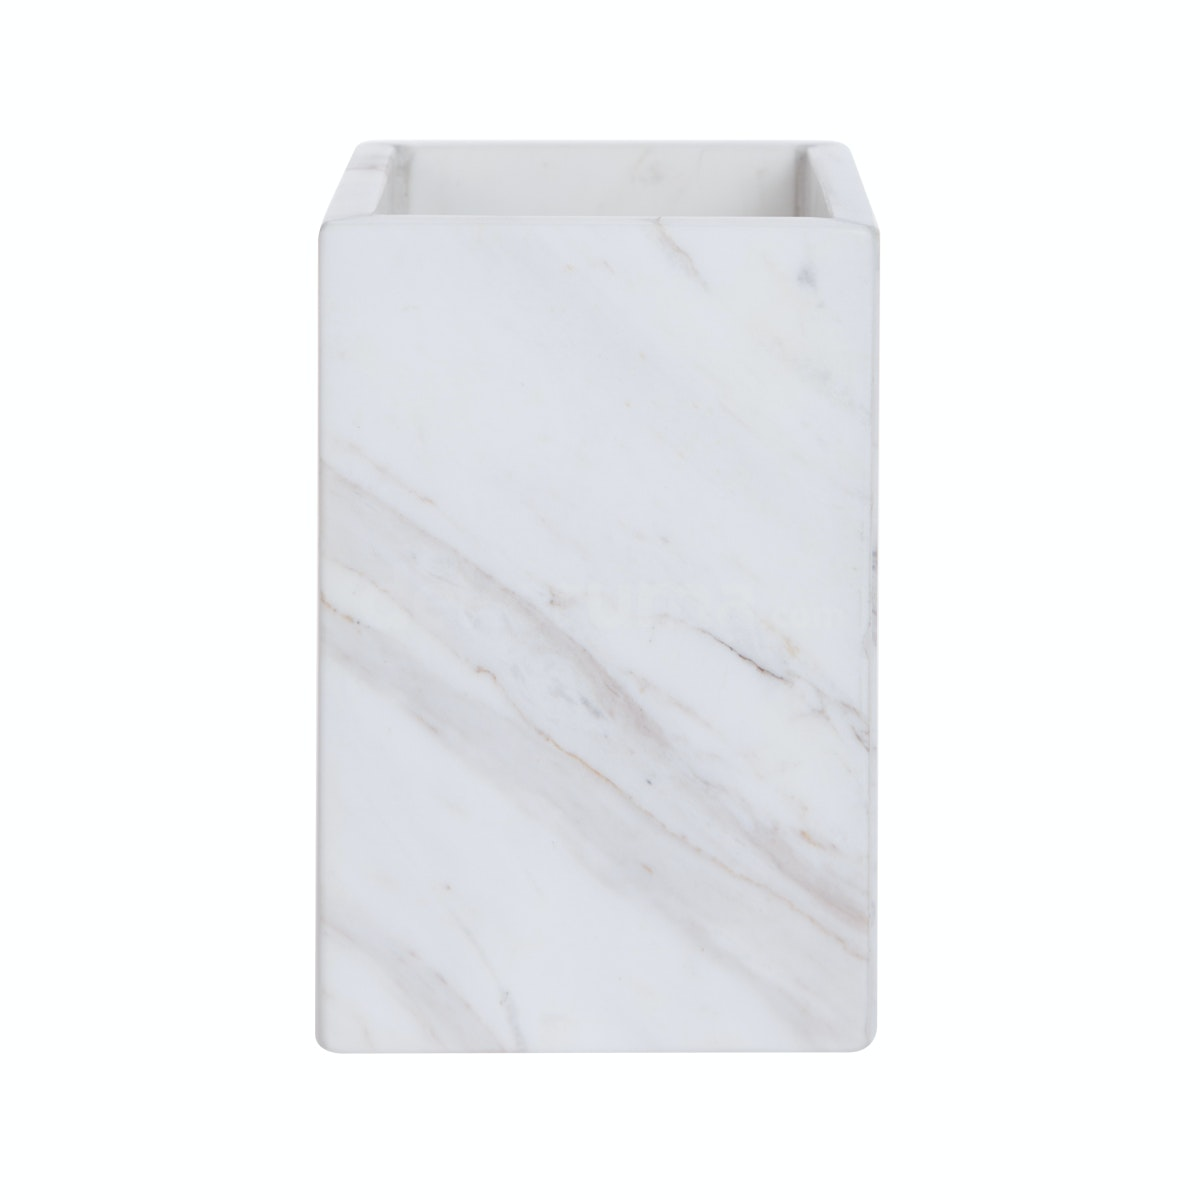 Marble & Co Aperto Marble Box (Reguler) Putih